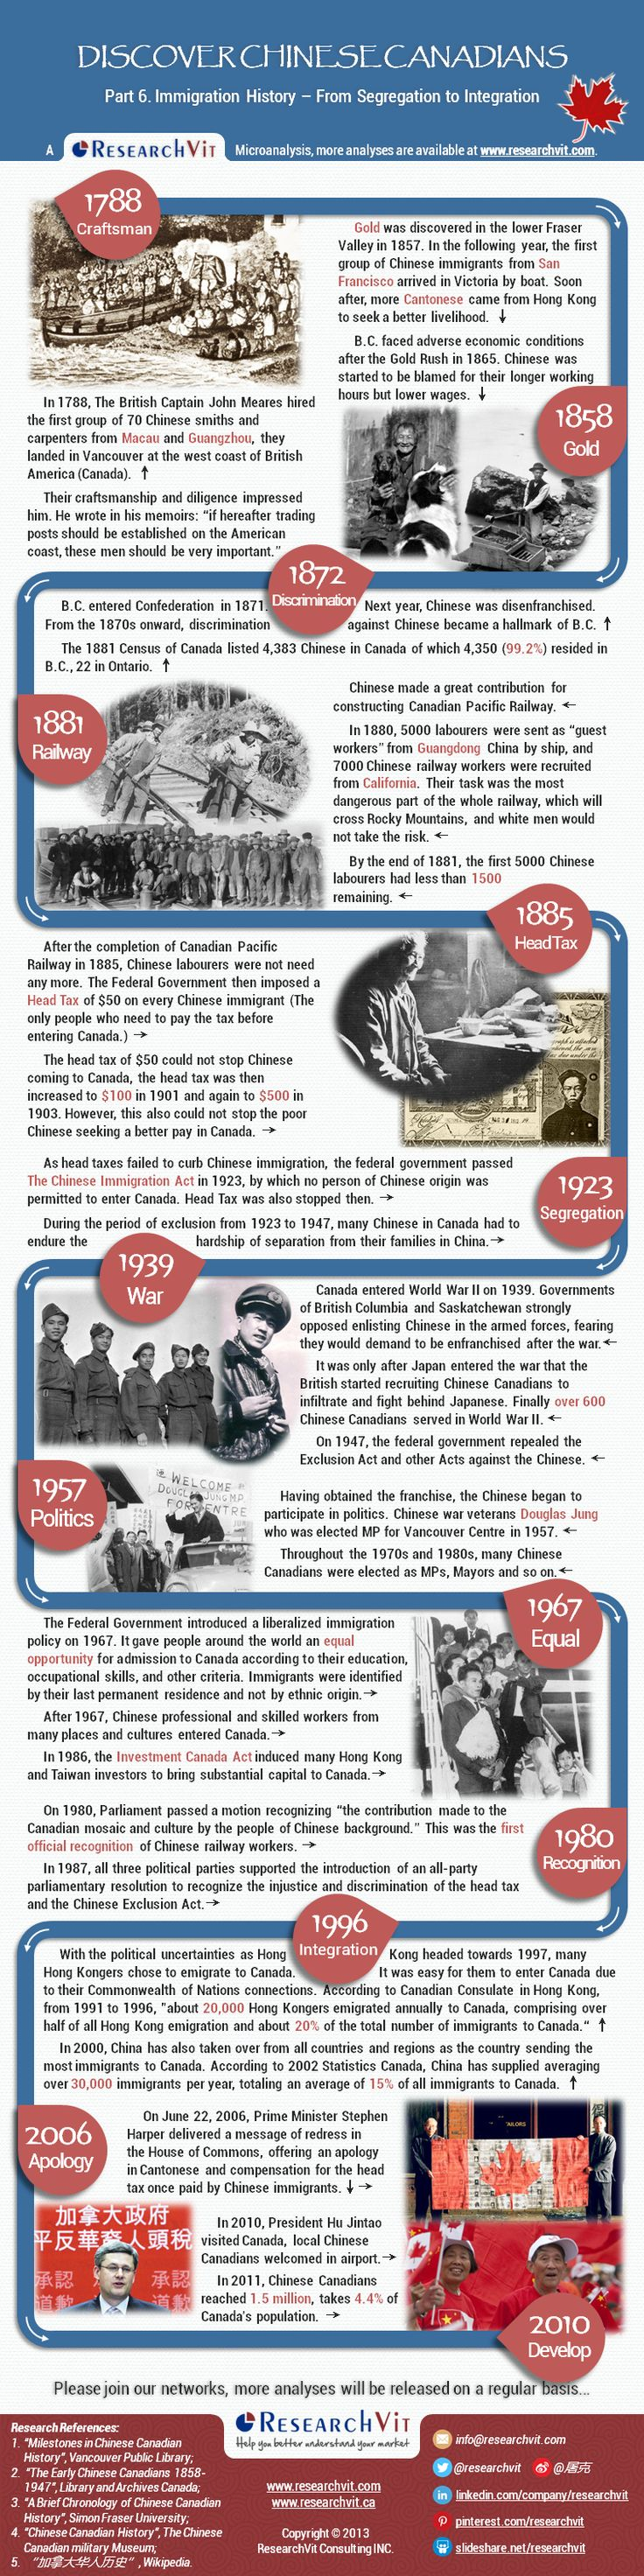 From segregation to integration: One picture gives you a clear vision about the immigration history of Chinese Canadians,  In 1788, The British CaptainJohn Meareshired the first group of 70 Chinese smiths and carpenters fromMacauand Guangzhou, they landed in Vancouver at the west coast of British America (Canada)...